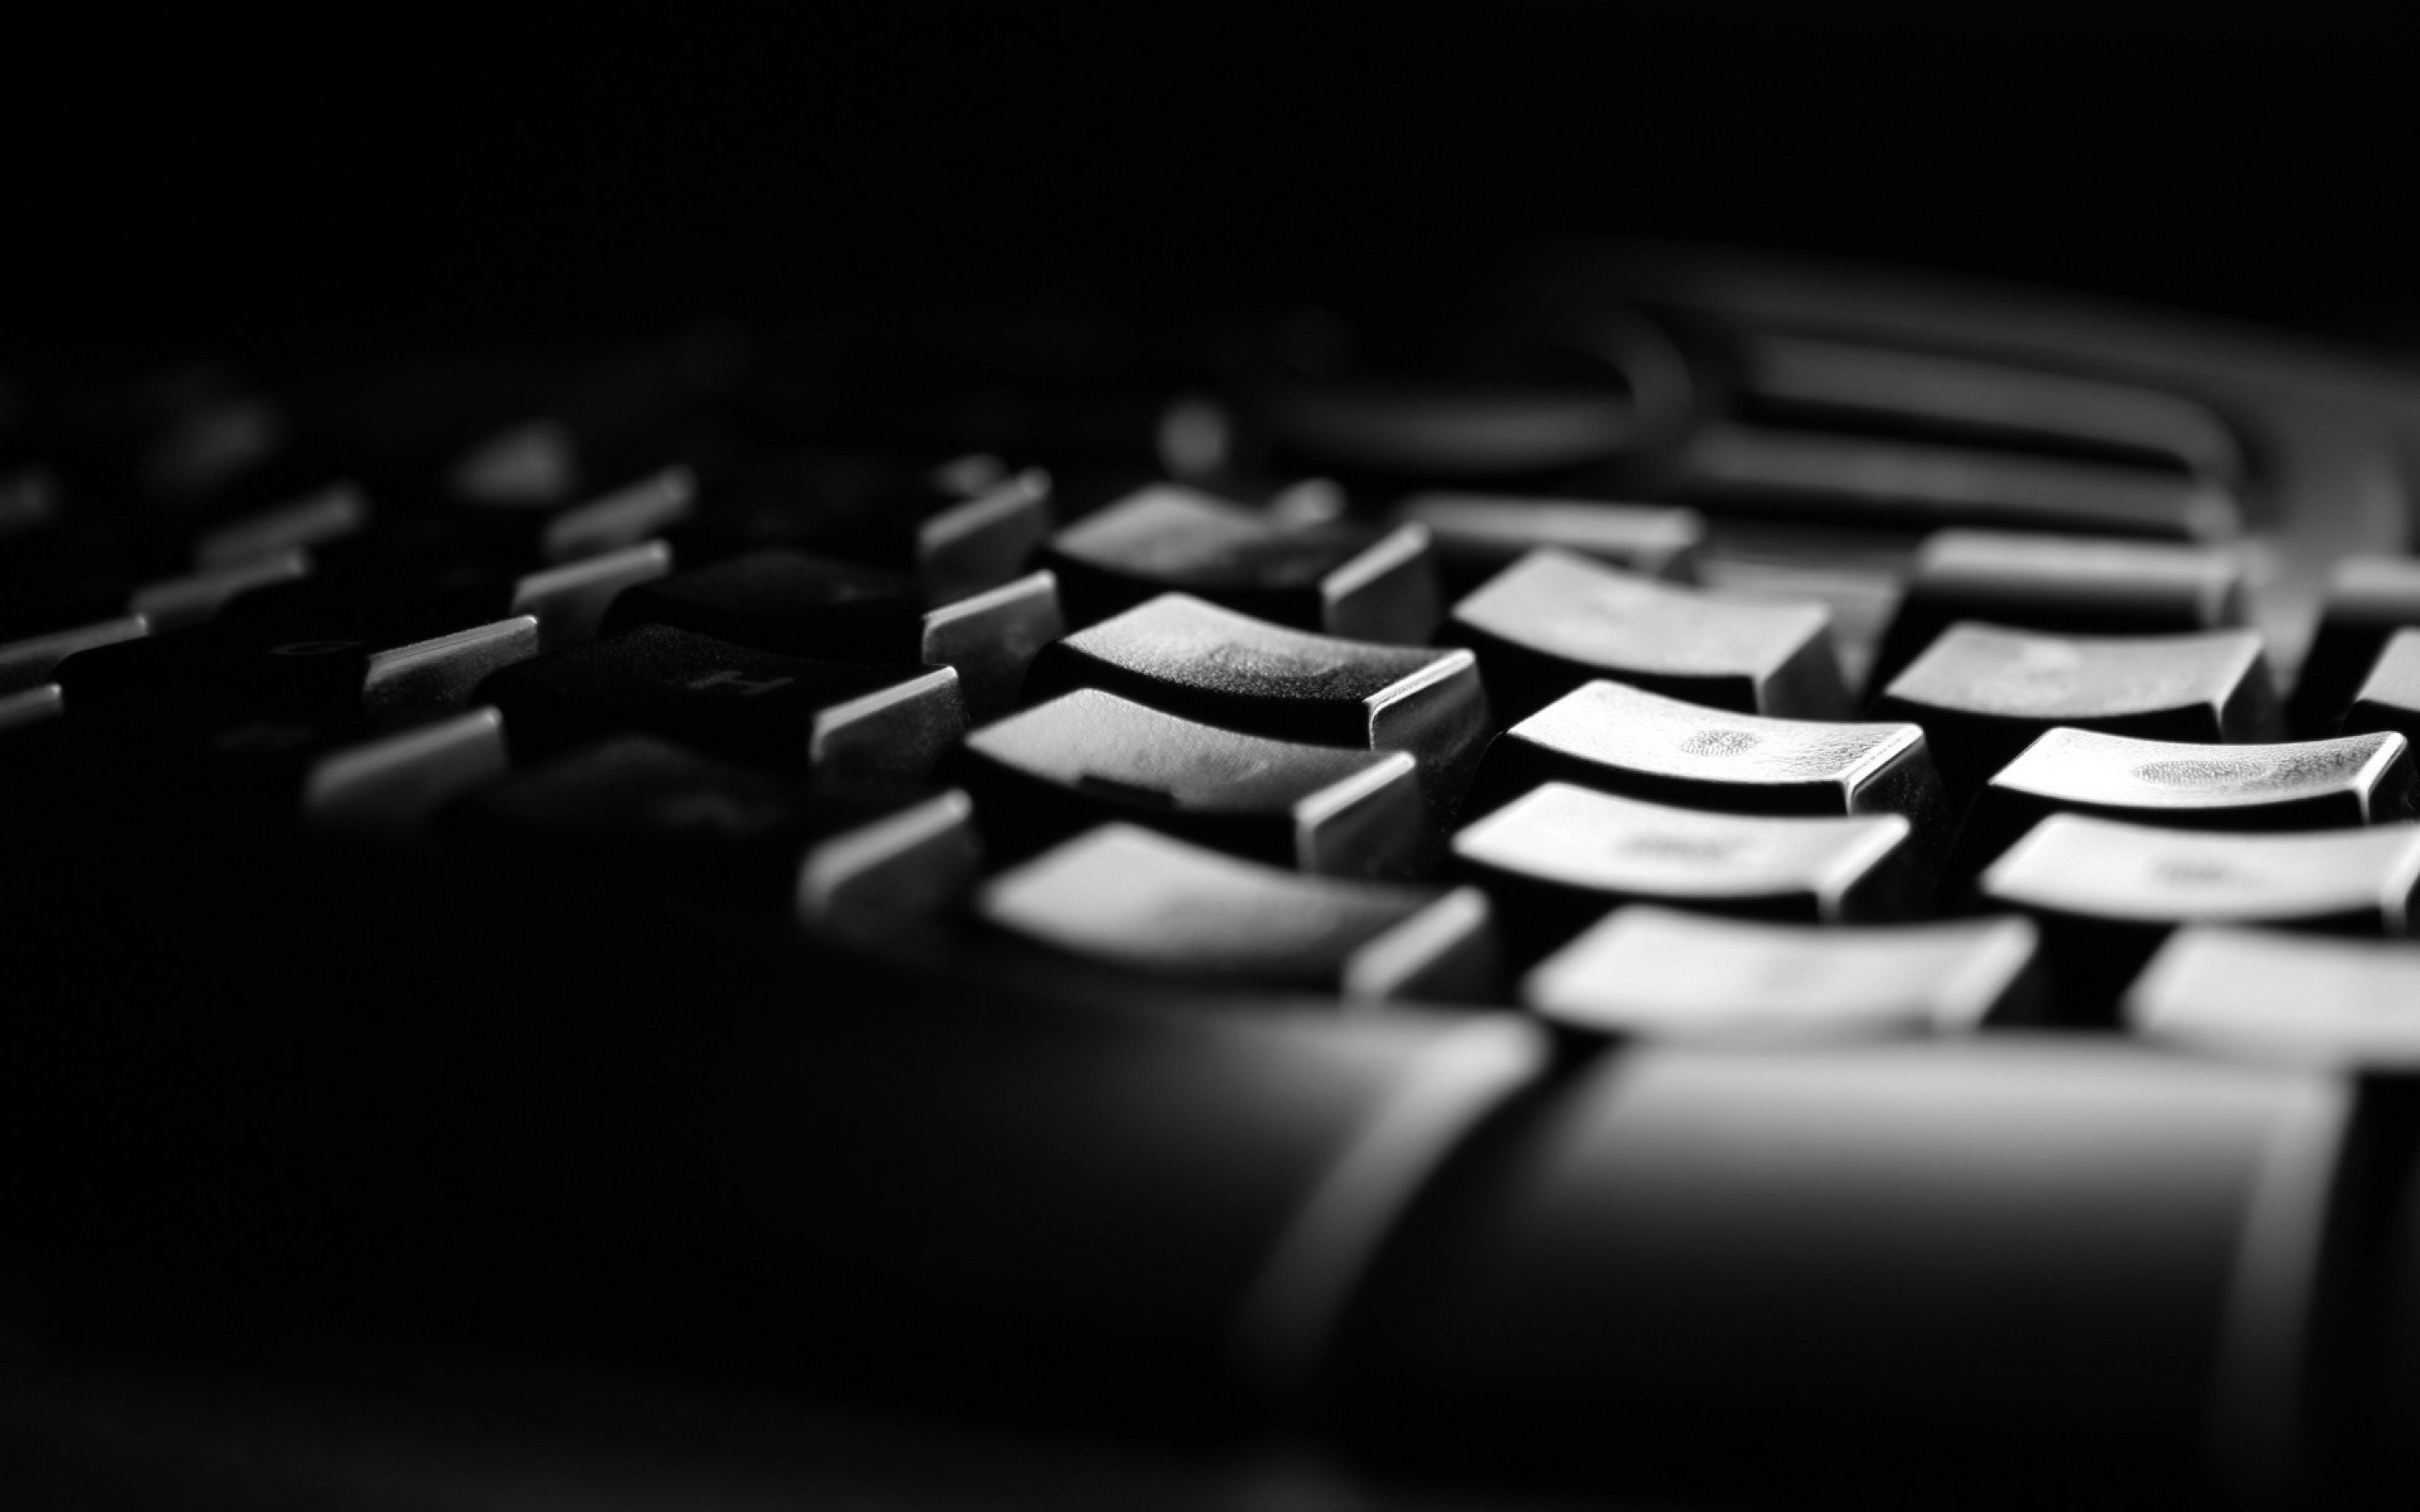 53 Keyboard Hd Wallpapers Background Images Wallpaper Abyss